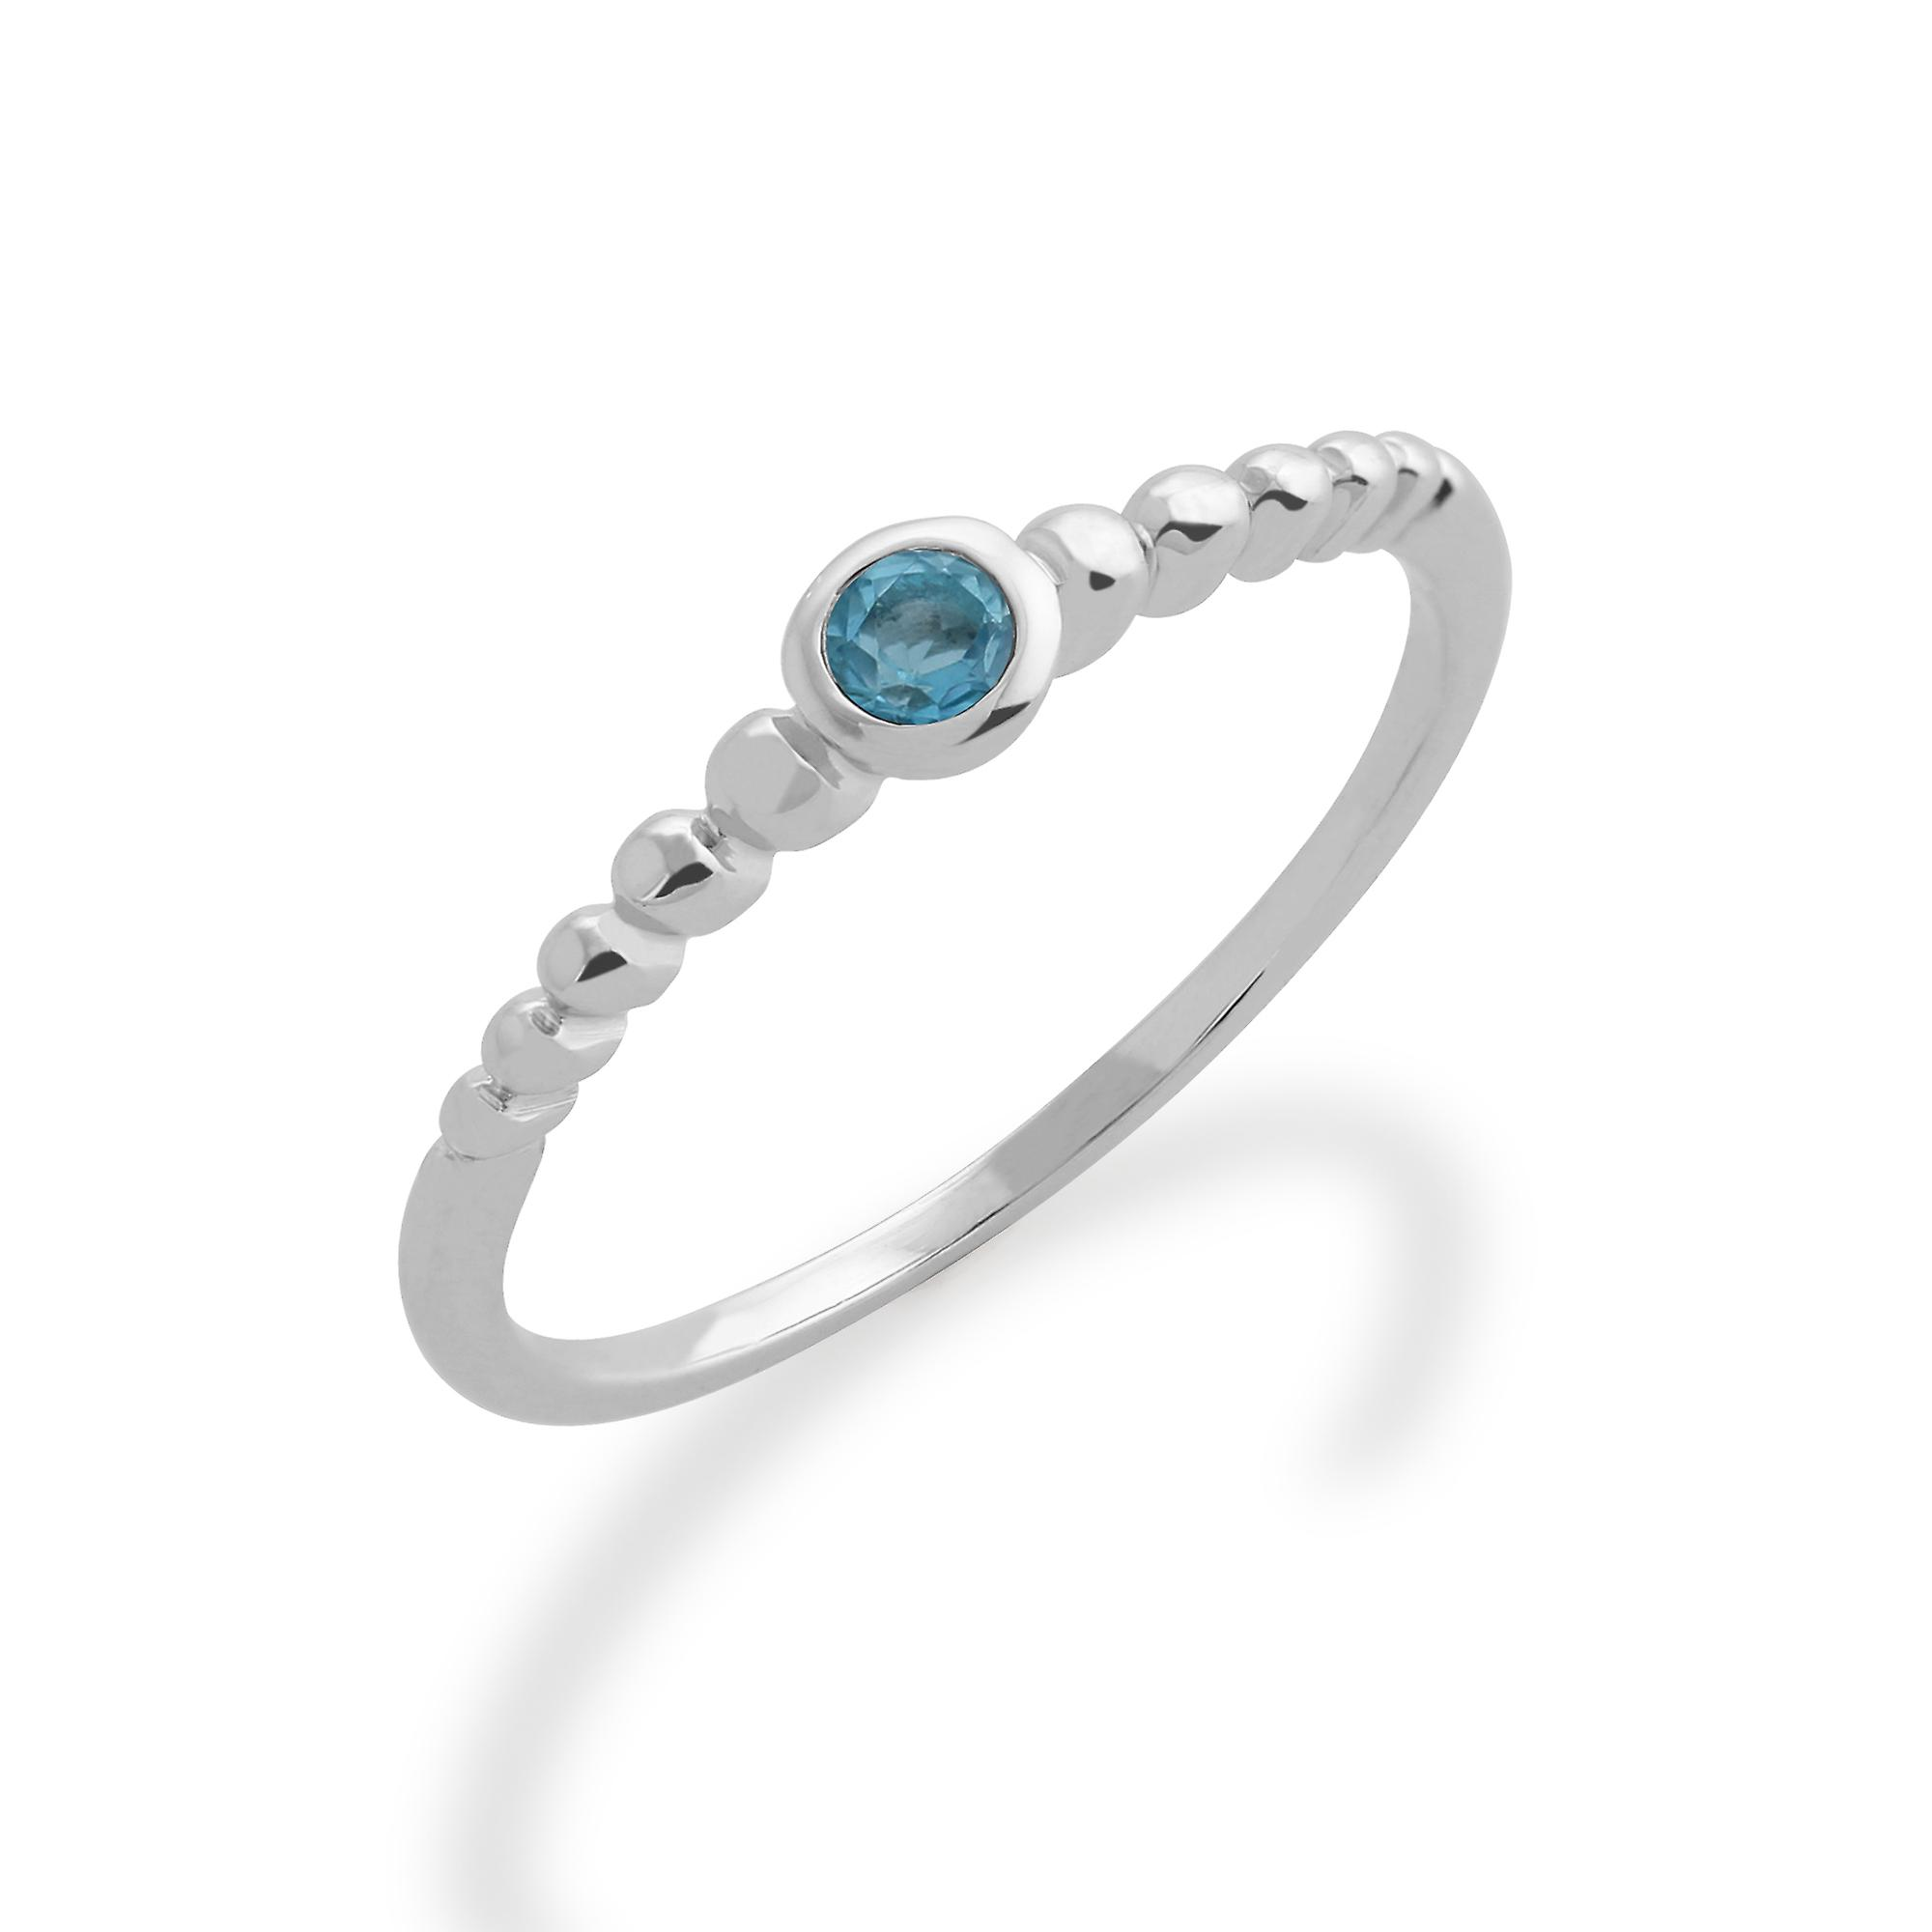 Gemondo 925 Sterling Silver 0.11ct Blue Topaz Stackable Birthstone Ring